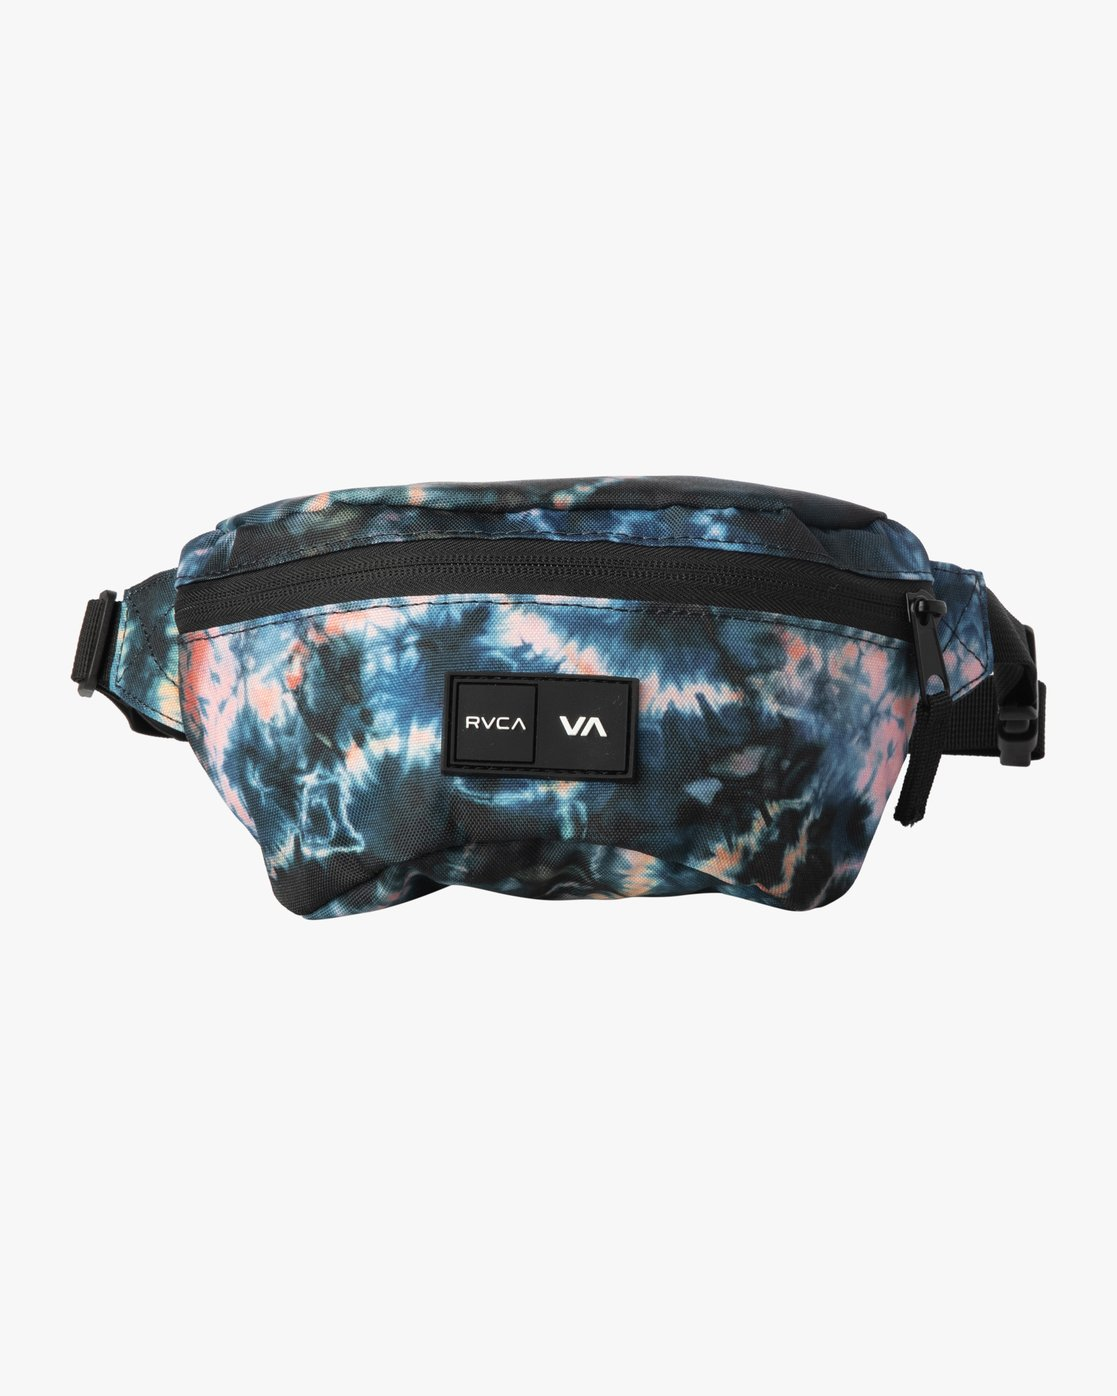 0 RVCA HIP BAG Black MATV2RRW RVCA